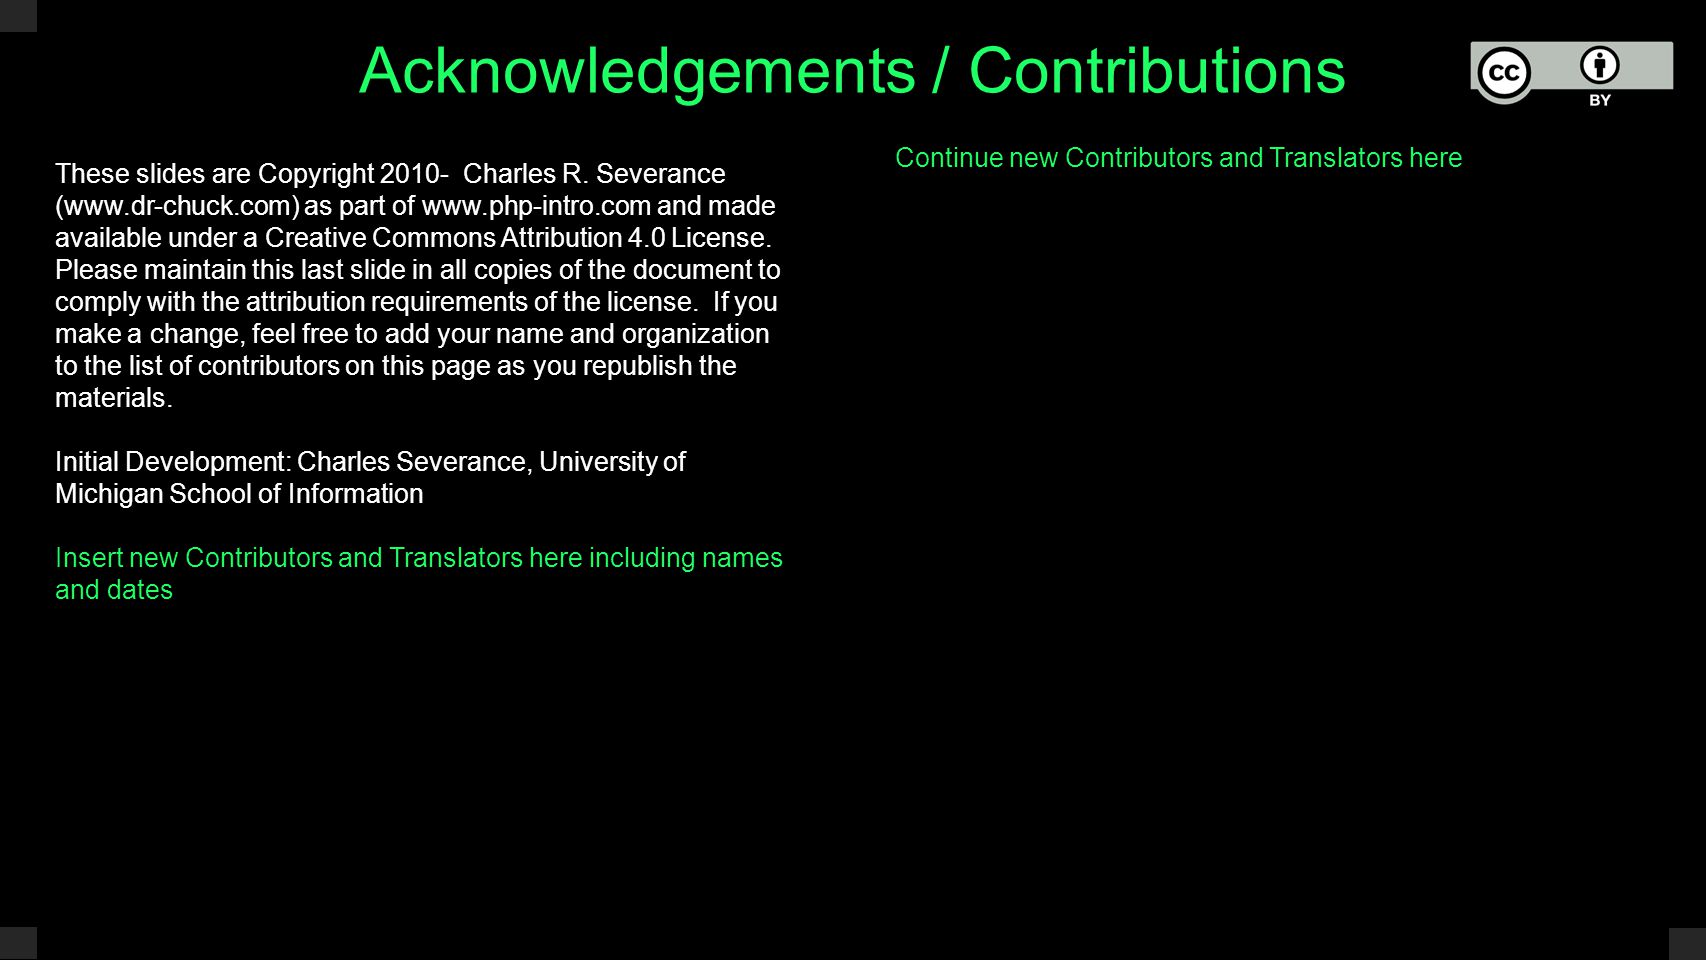 Acknowledgements / Contributions These slides are Copyright 2010- Charles R. Severance (www.dr-chuck.com) as part of www.php-intro.com and made availa